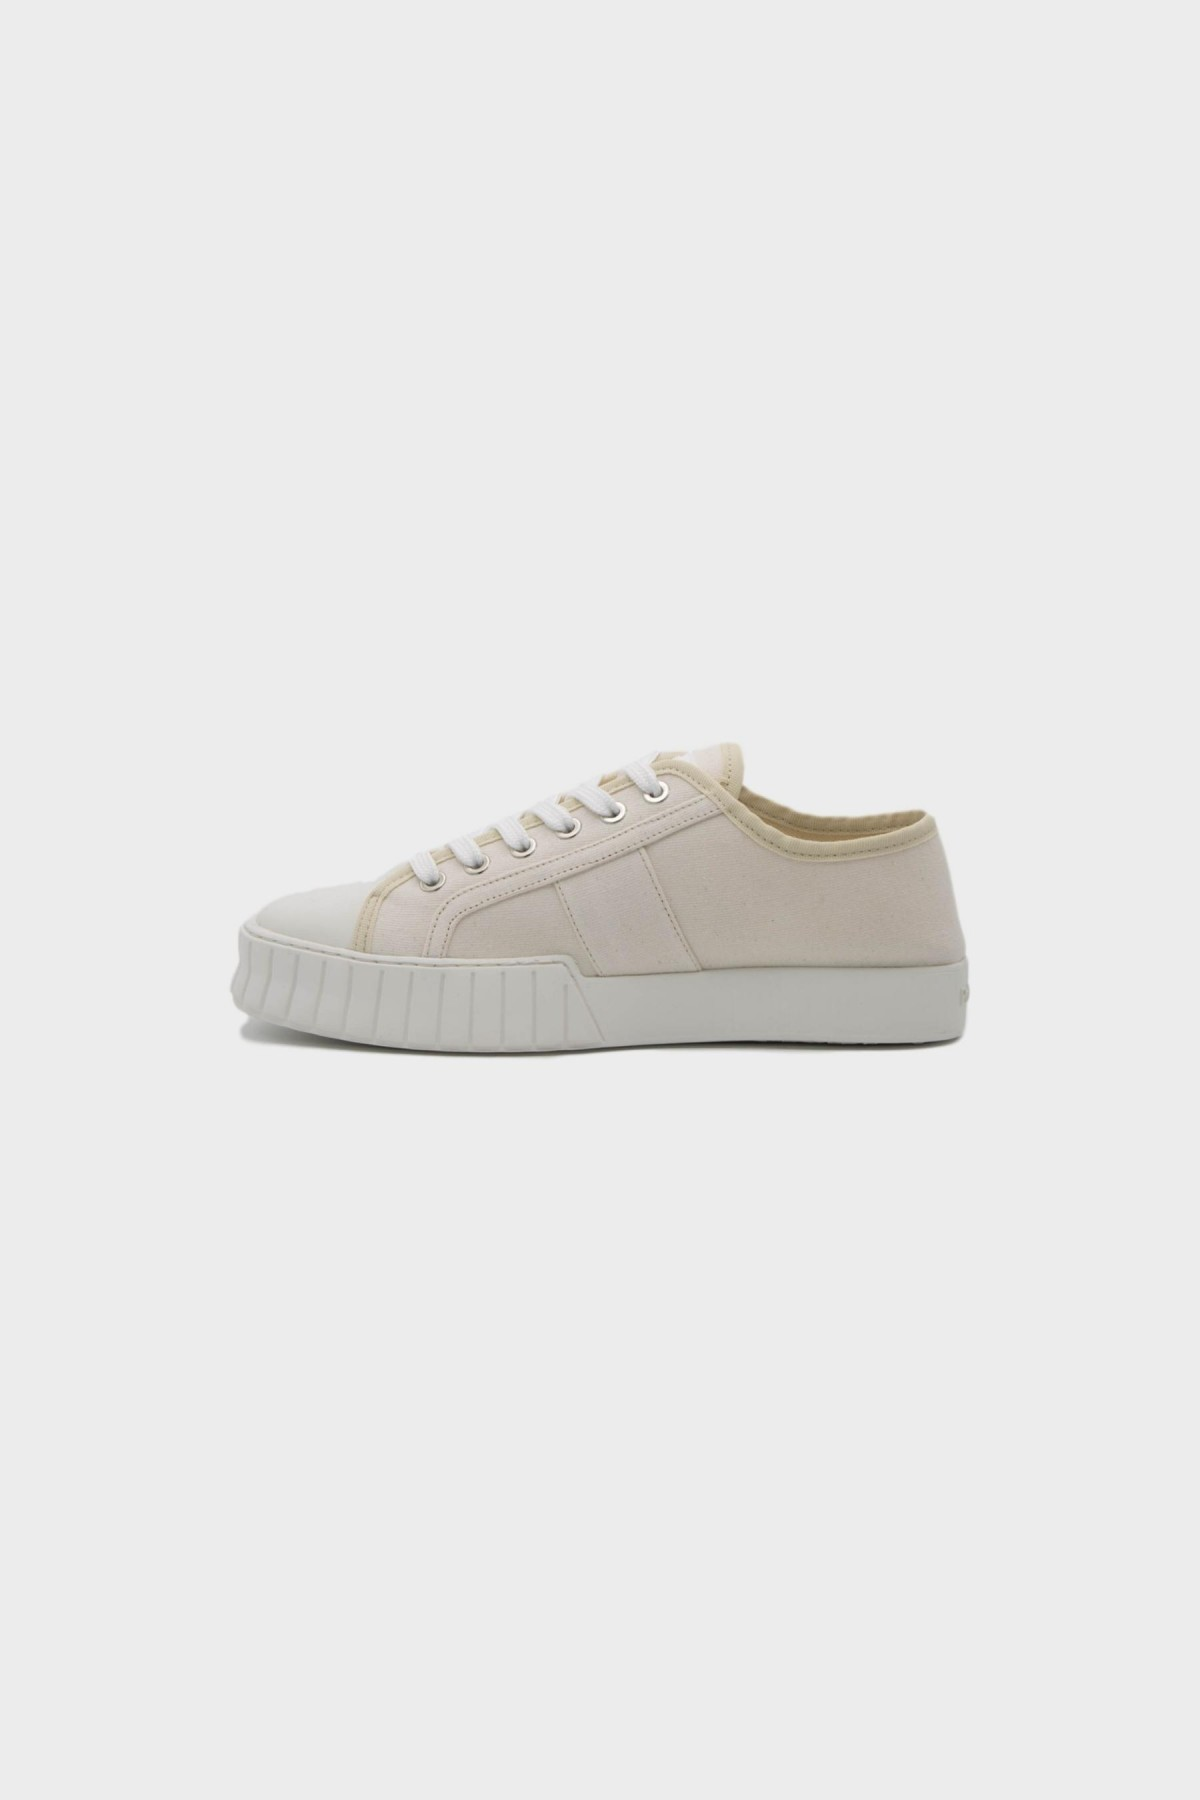 Primury Divid Recycled Canvas in White Sole